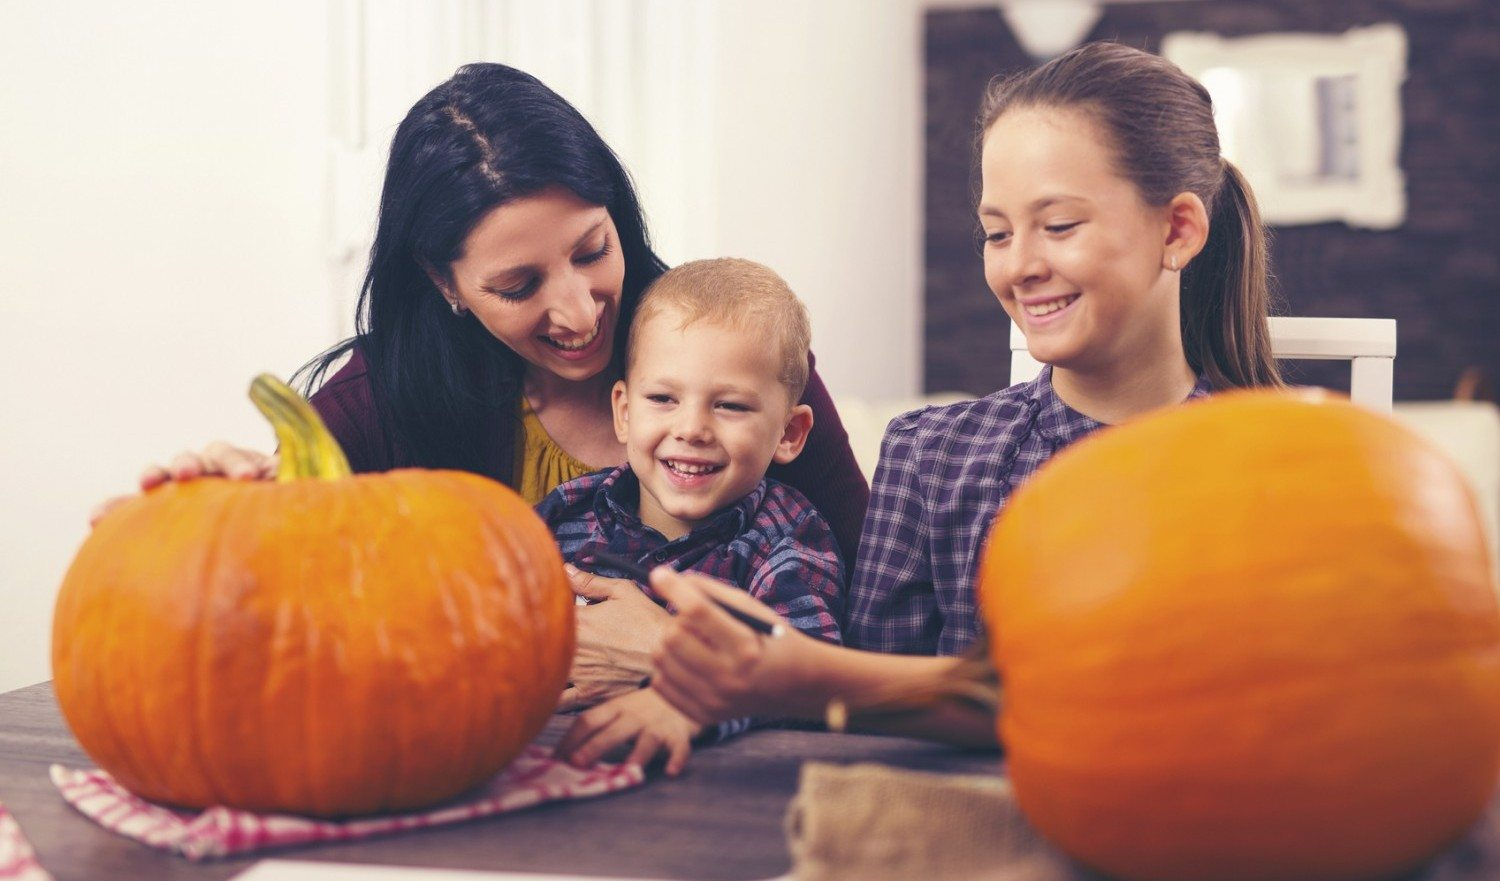 Mother with daughter and son creating big orange pumpkin